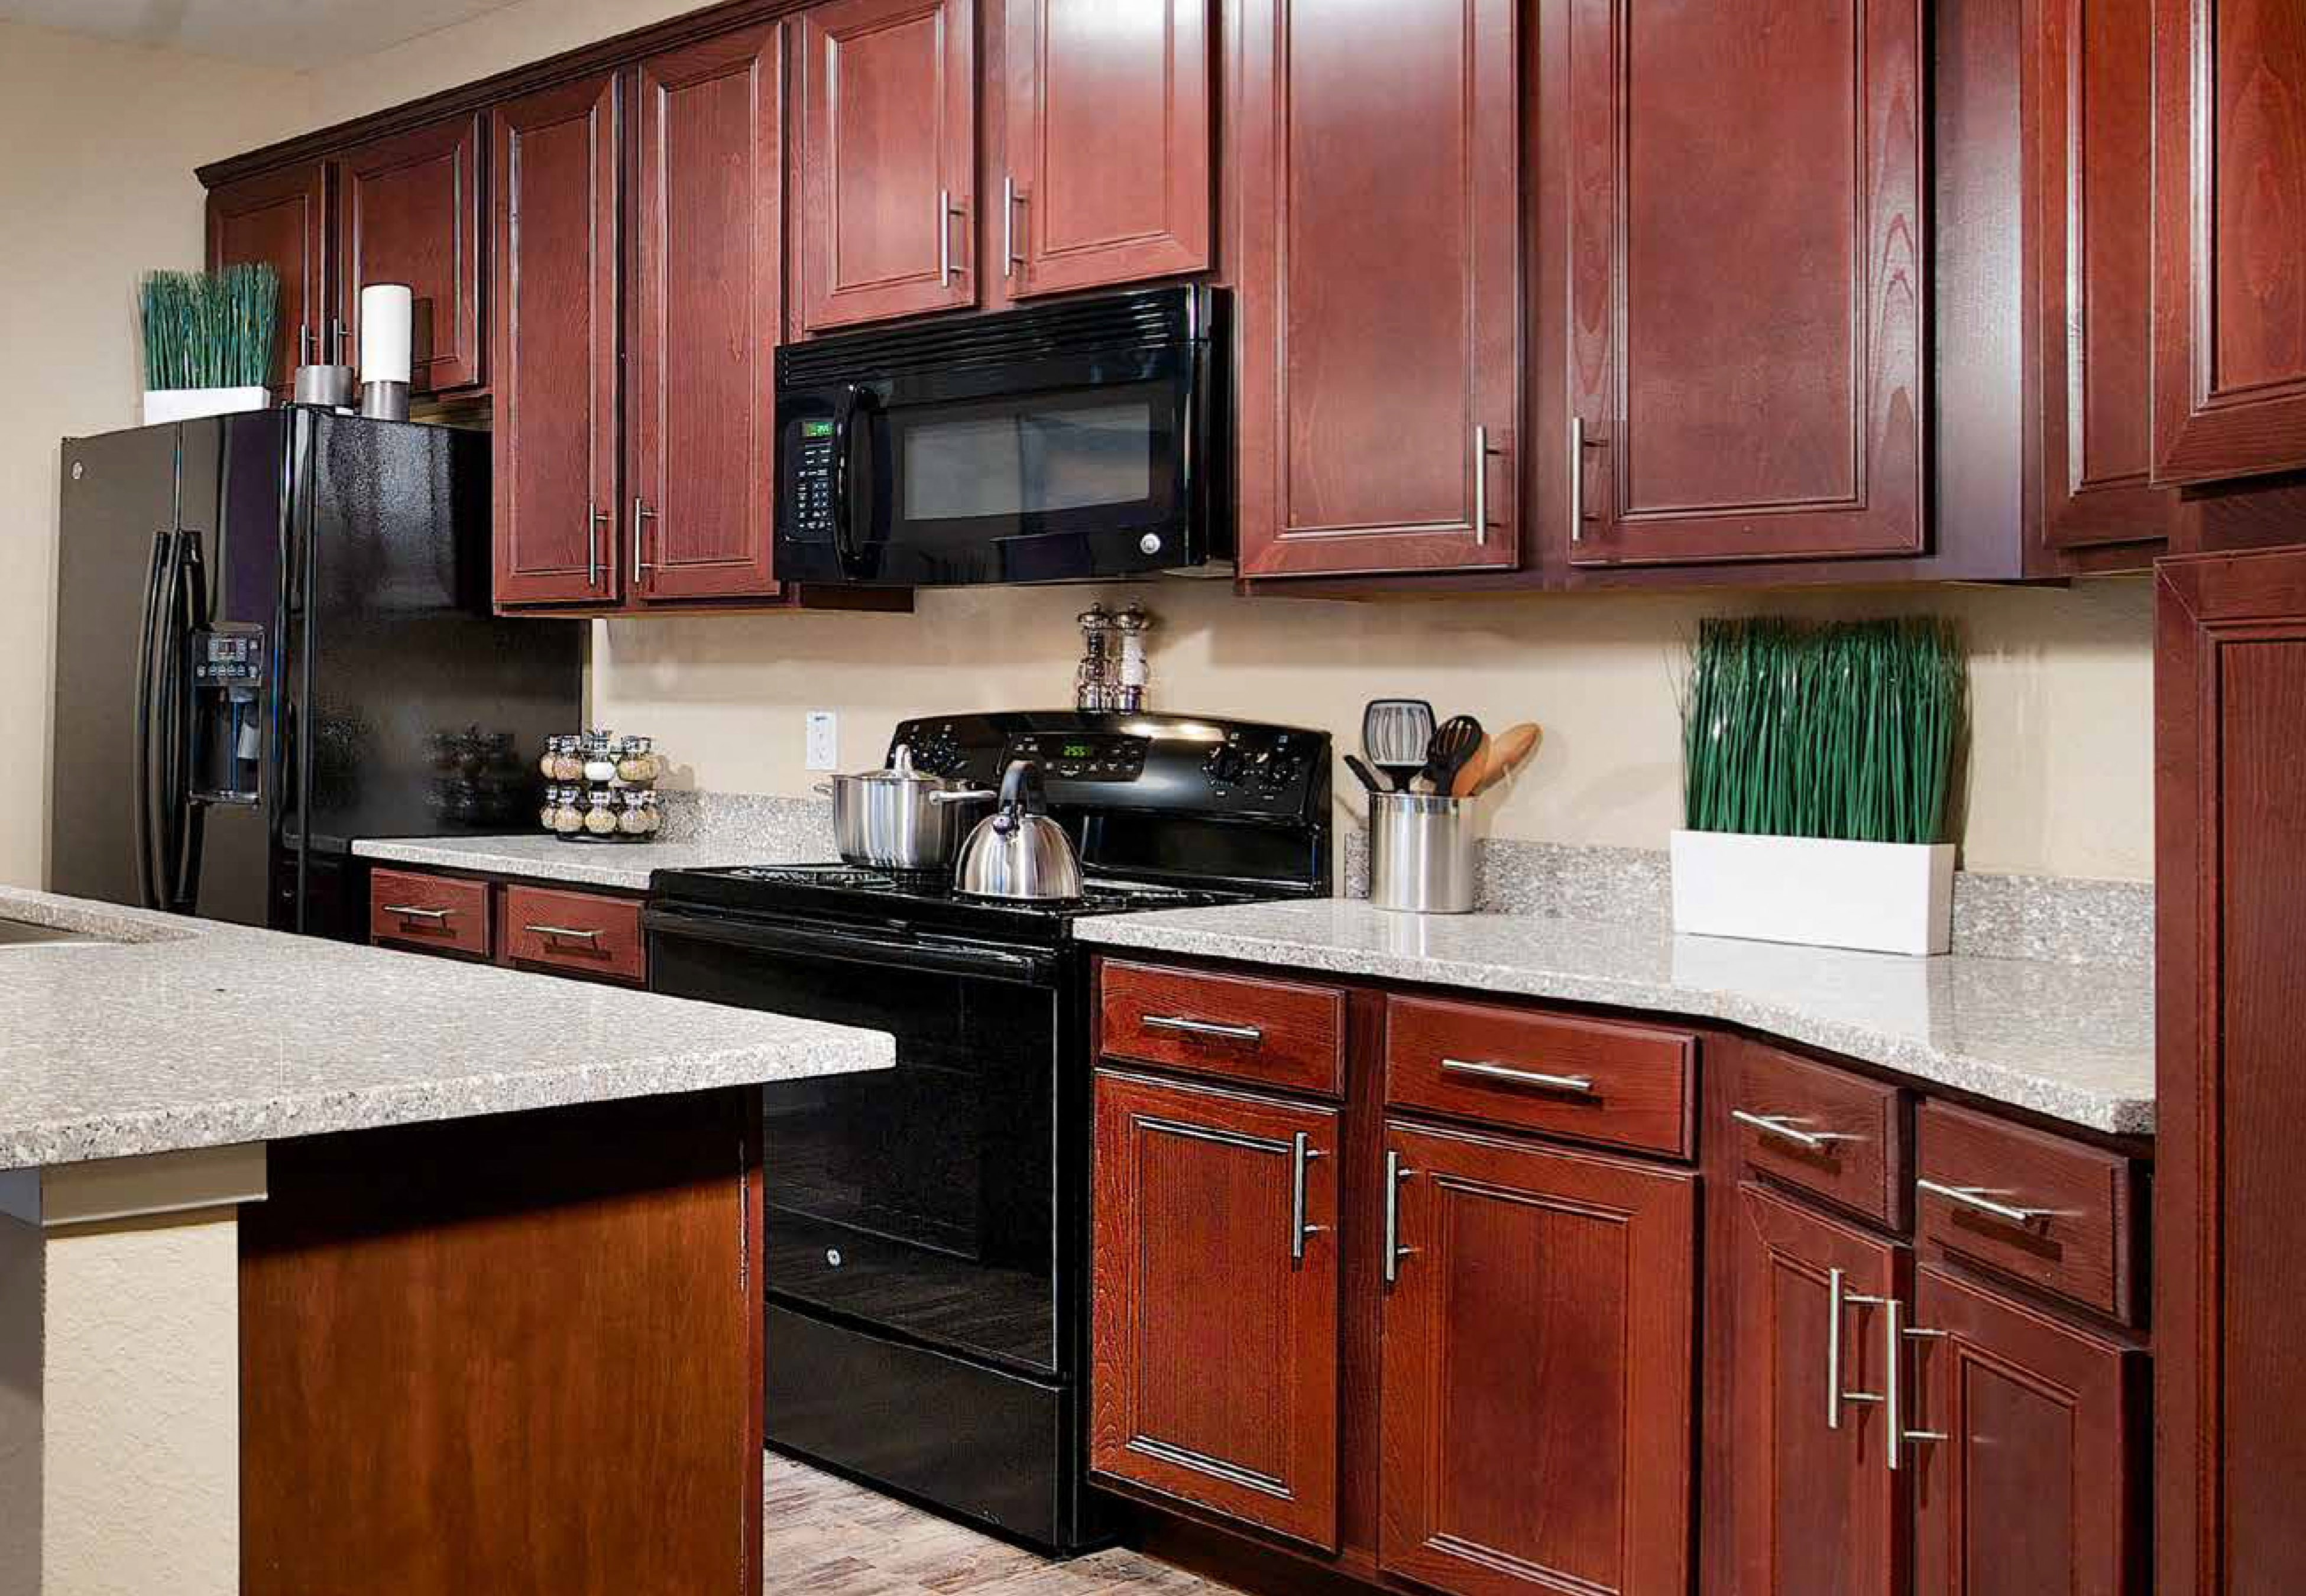 Kitchen at Park Place Apartments in Oviedo, FL